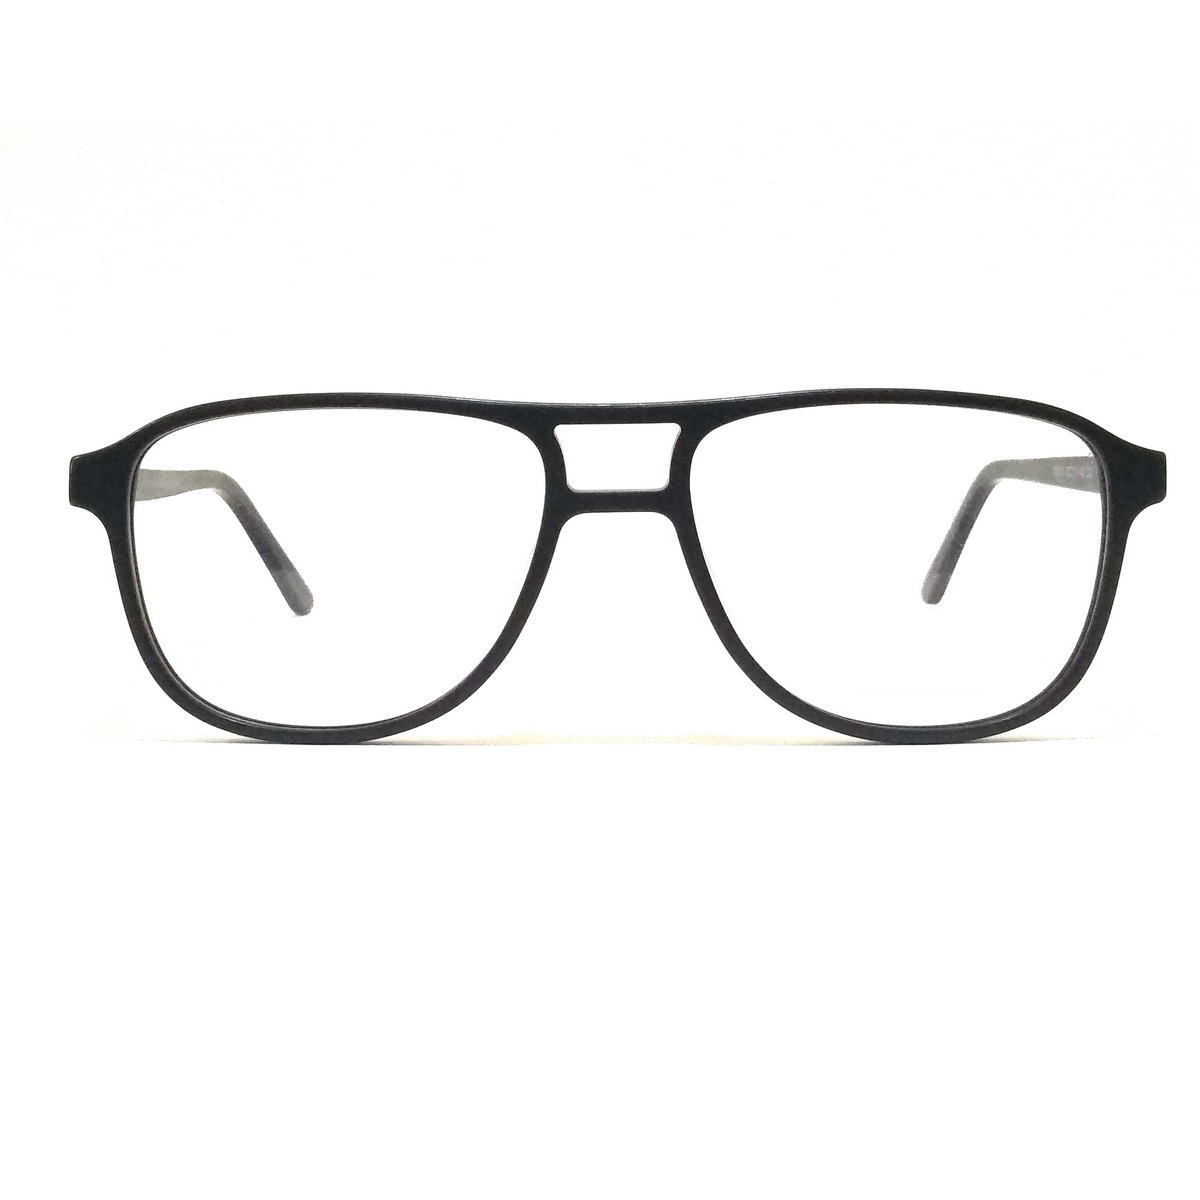 Blue Light Blocker Computer Glasses Anti Blue Ray Eyeglasses MB008BK